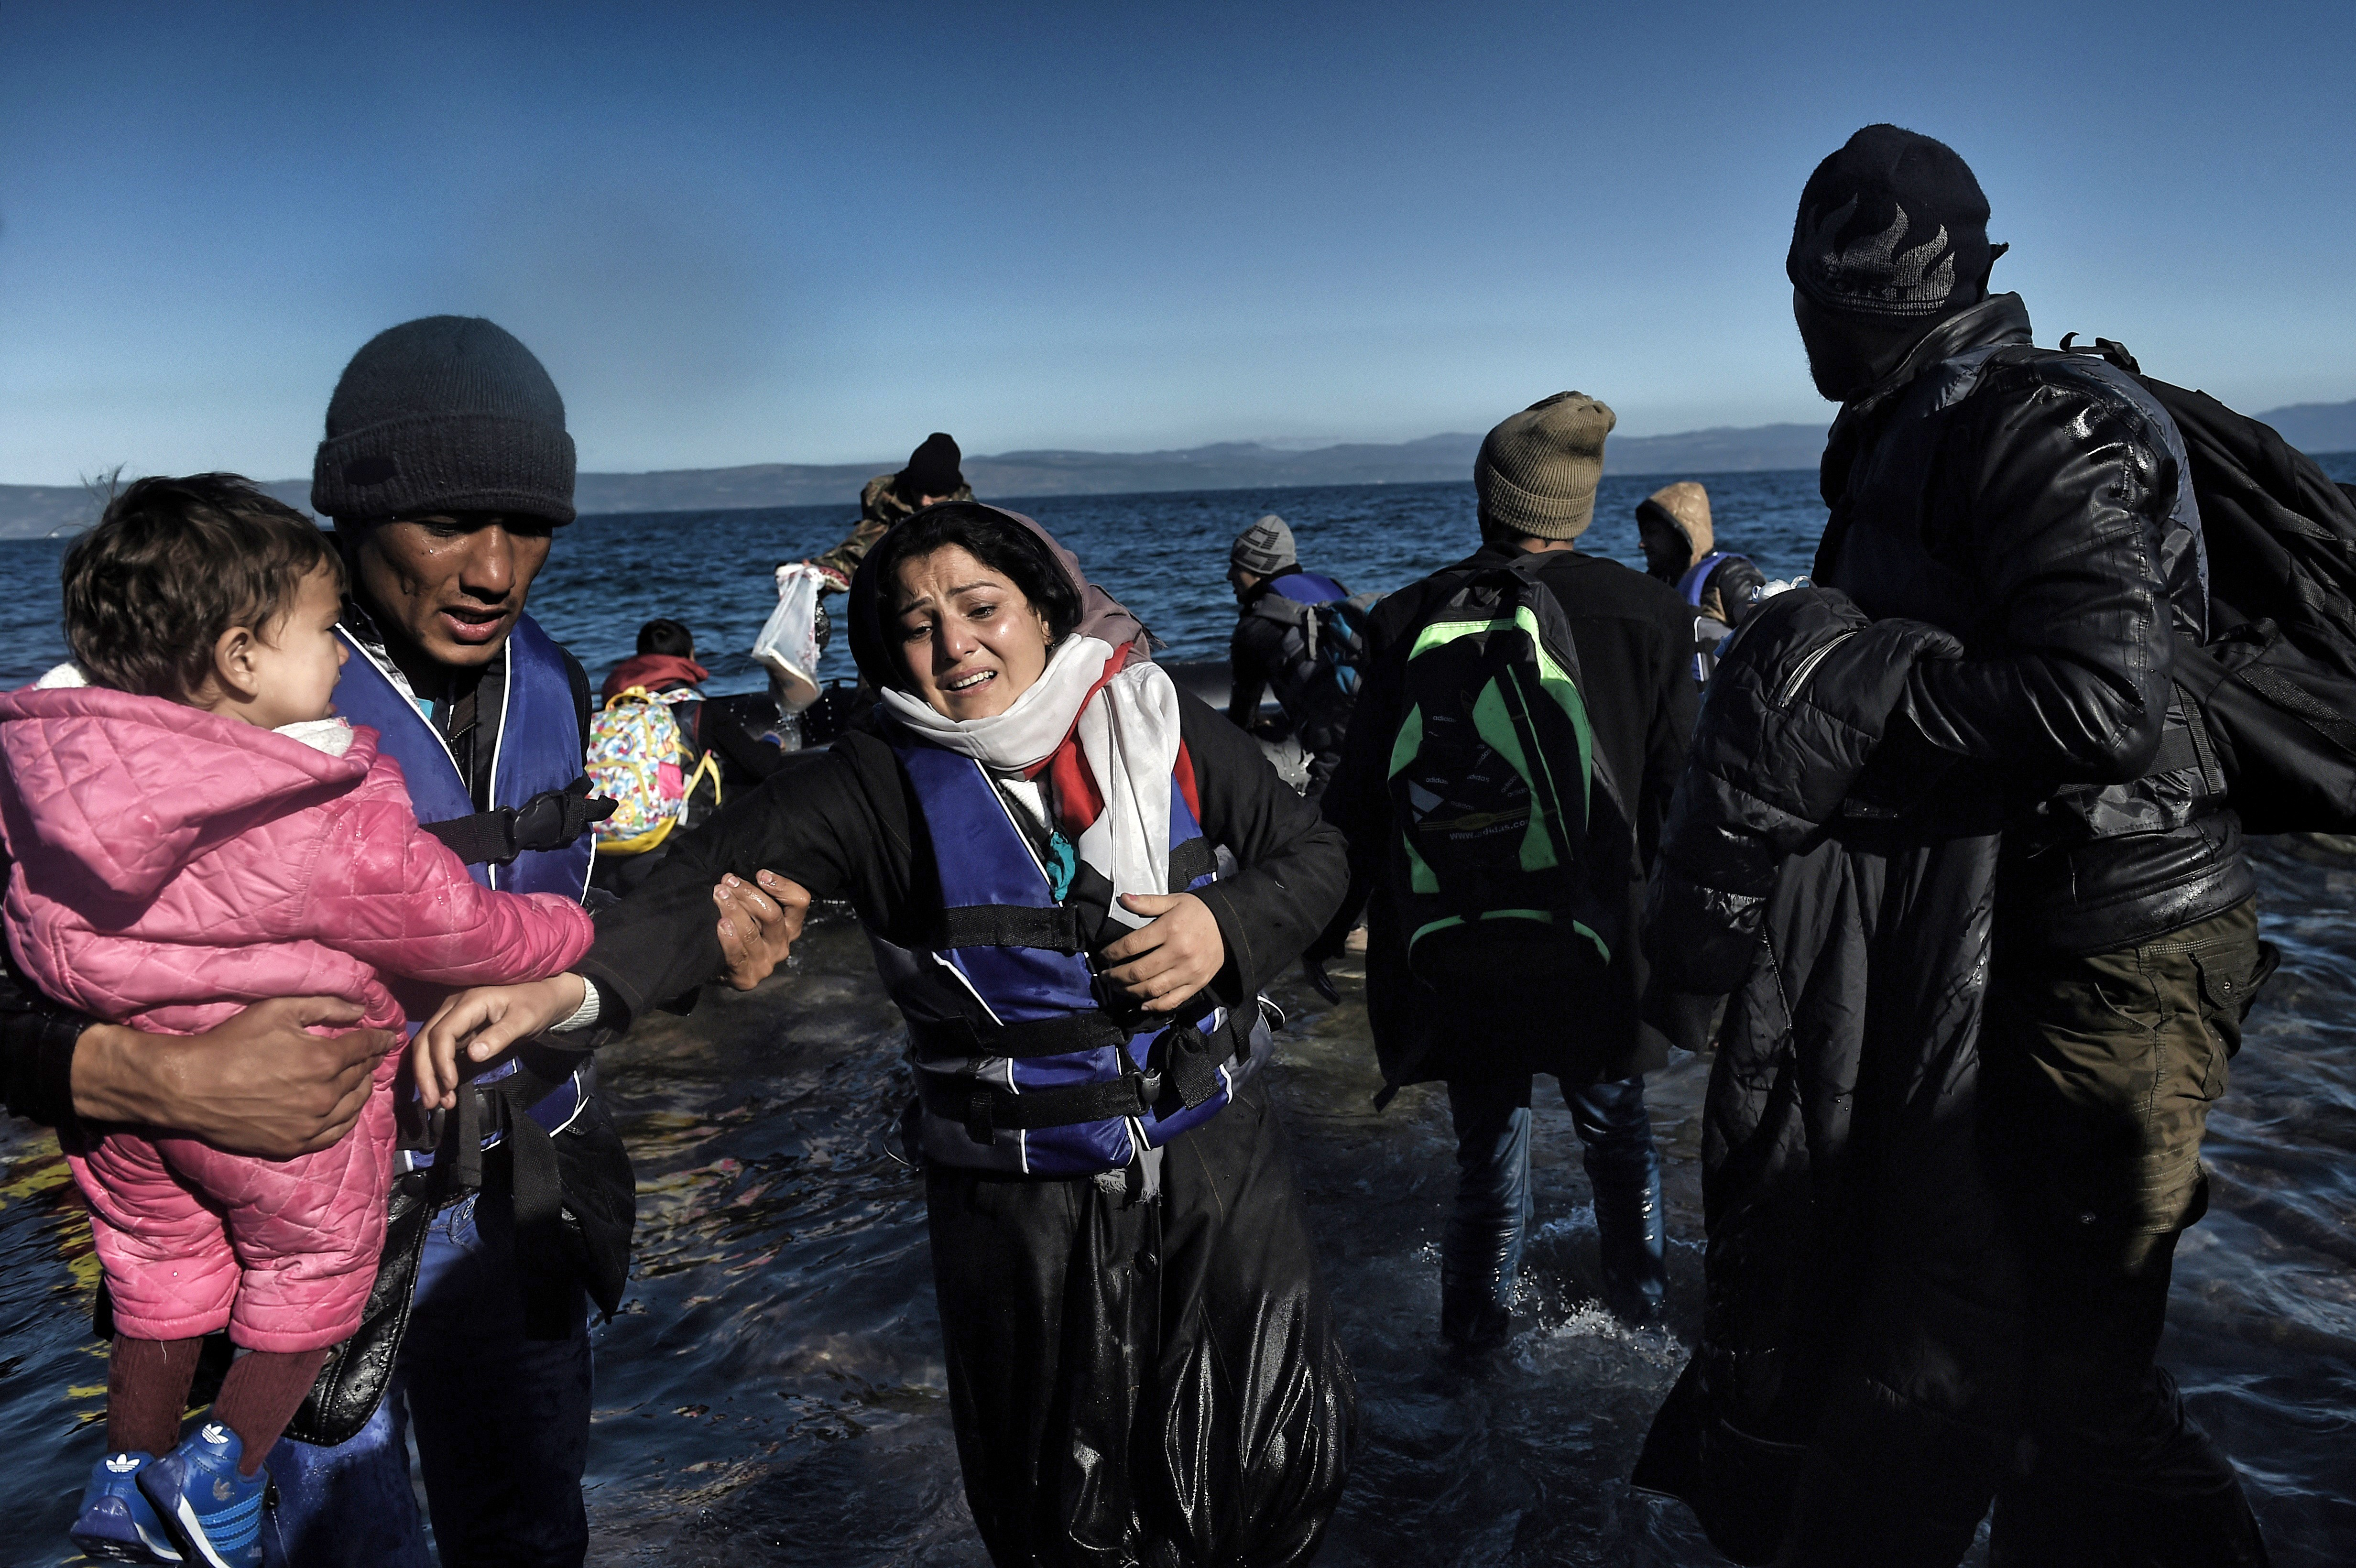 Refugees and migrants arrive on the Greek island of Lesbos after crossing the Aegean Sea from Turkey on November 2, 2015.